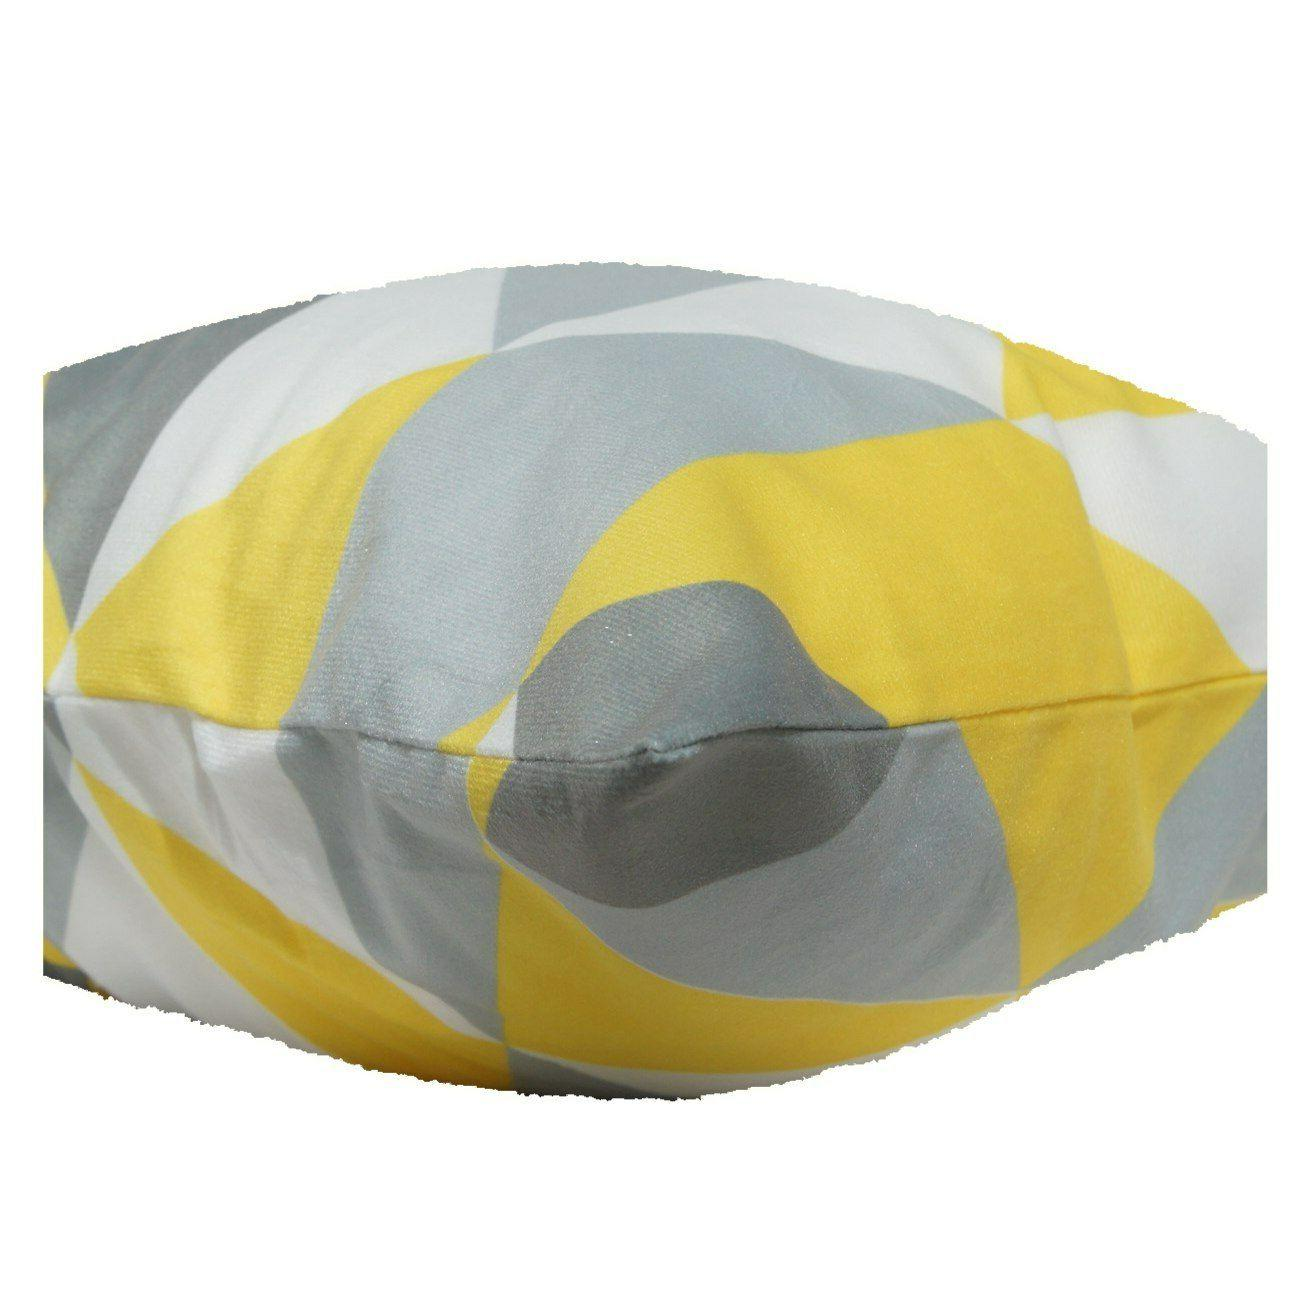 Yellow Soft PILLOW Couch Bed Premium 18x18""